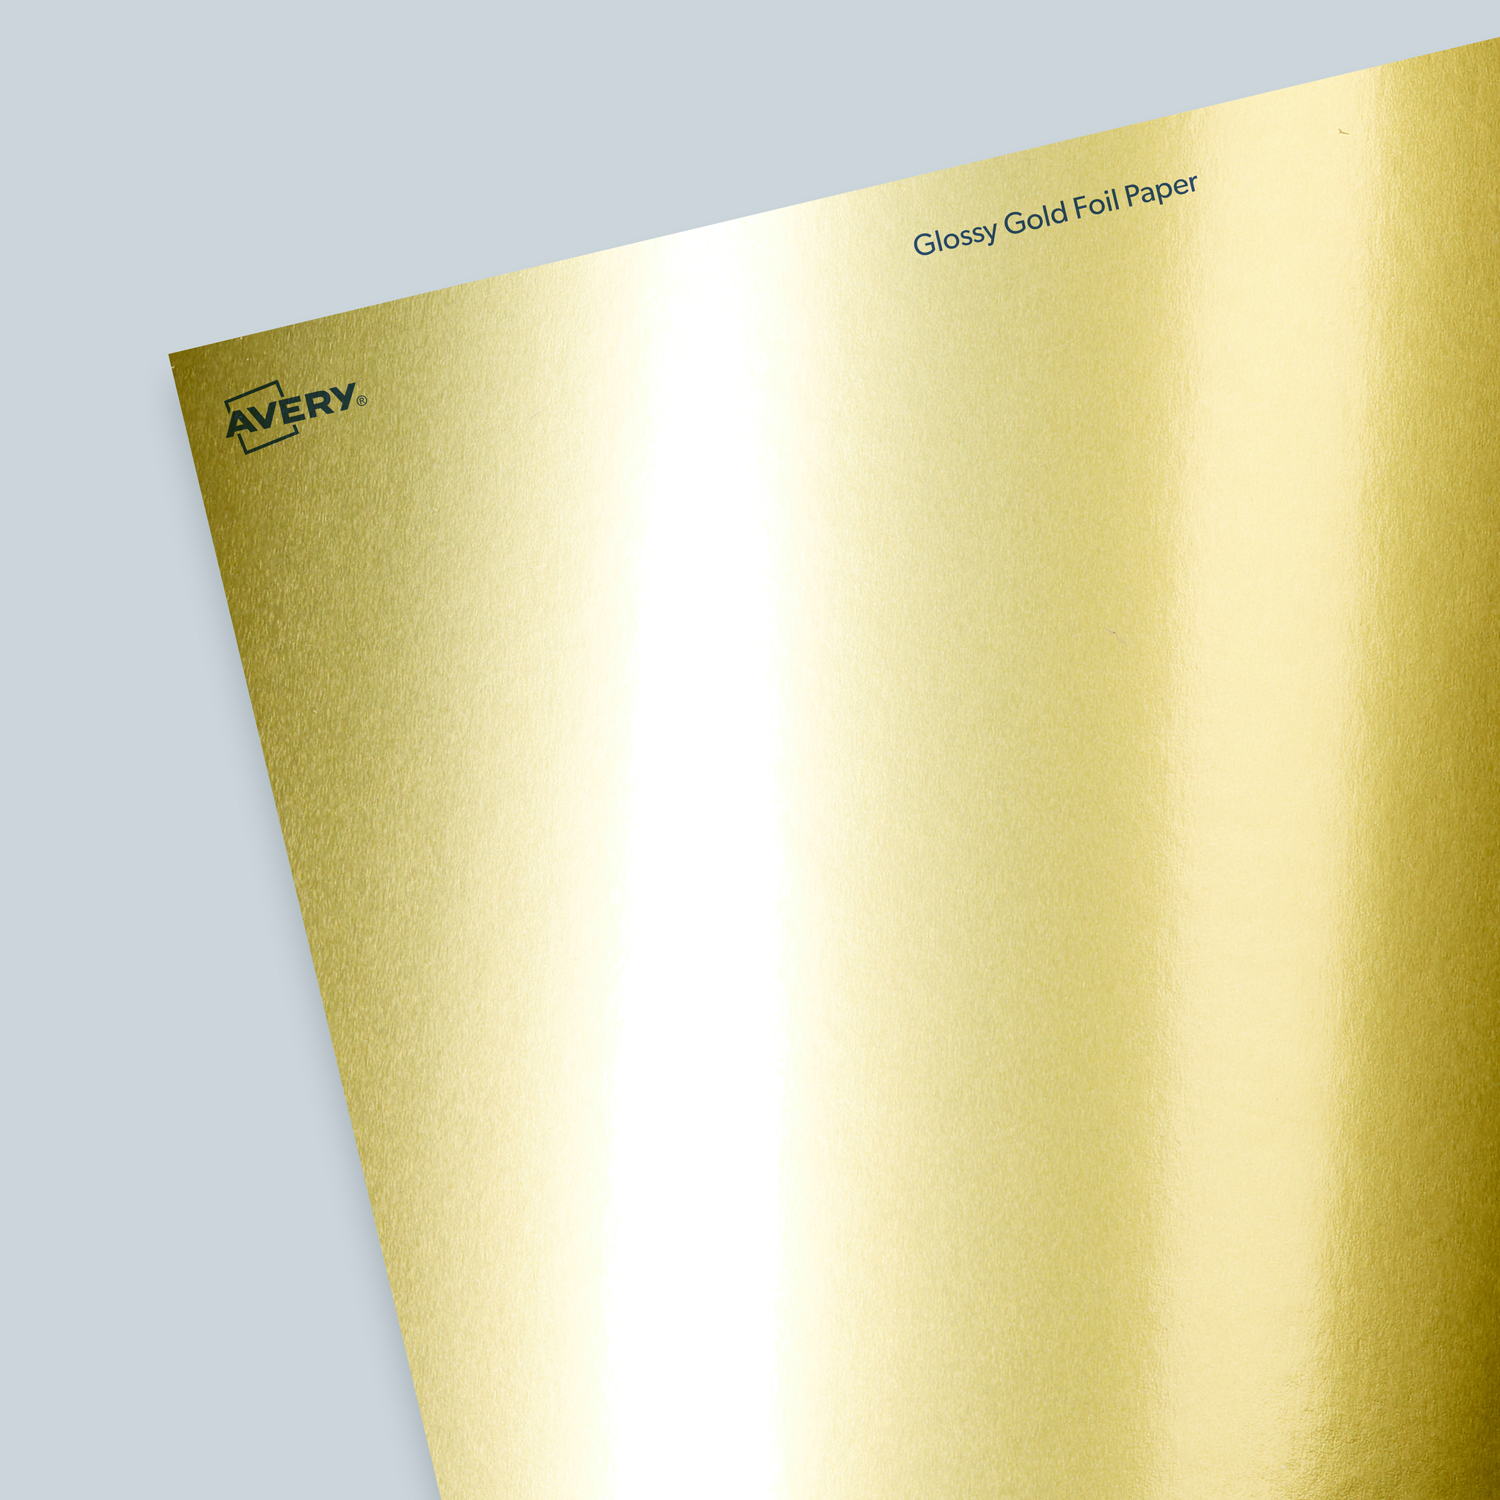 Glossy Gold Foil Paper - Blank Sheet Labels